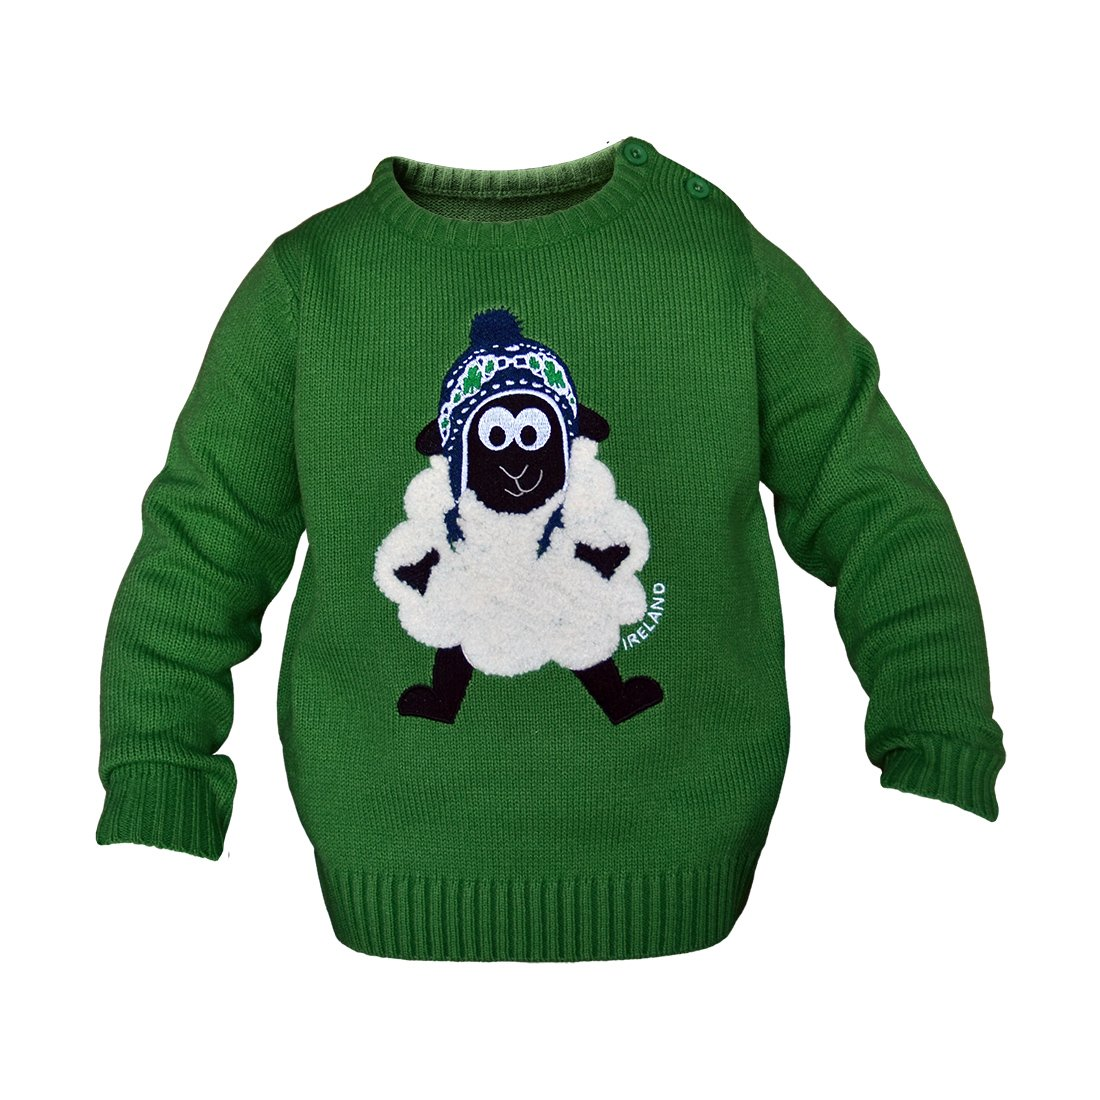 Round Neck Ireland Kids Sweater With Fluffy Sheep, Emerald Green Colour Carrolls Irish Gifts